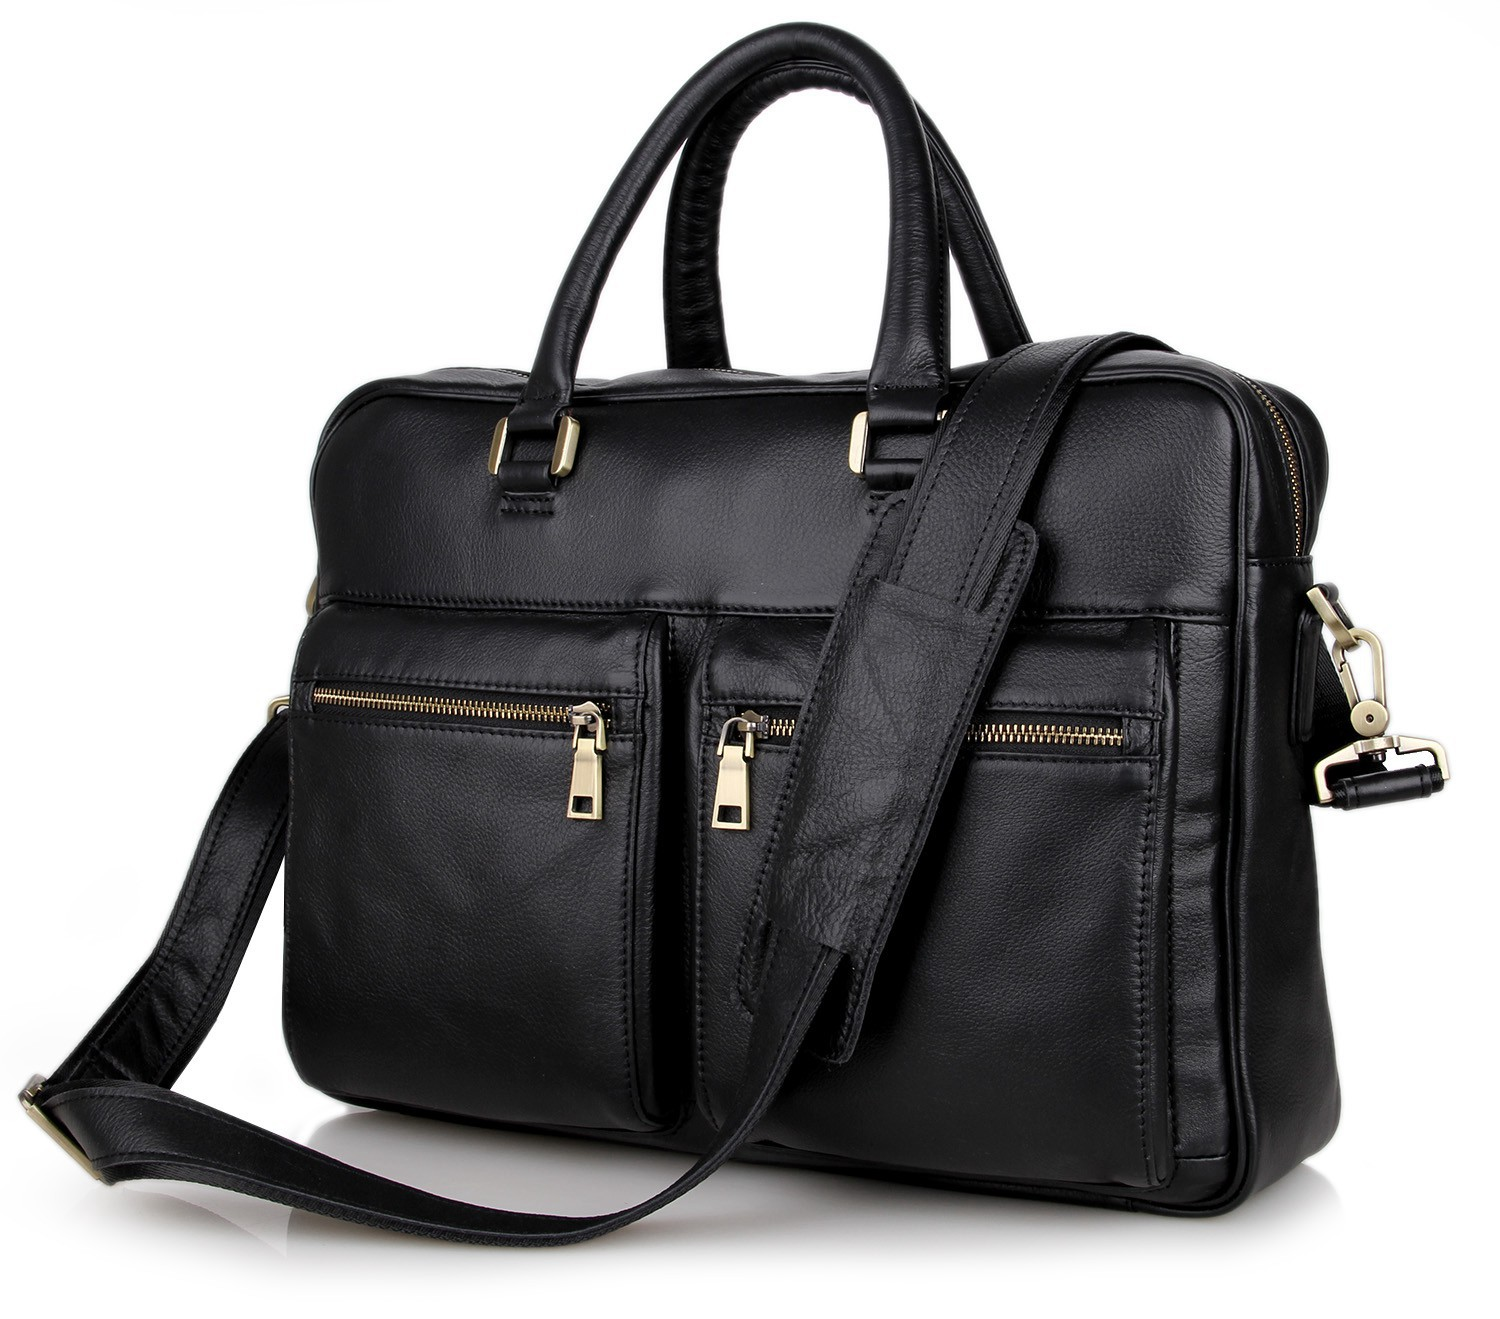 Buy Business Men Leather Laptop Tote Bags Man Crossbody Bag Men  39 s  Messenger Travel Briefcases Bags Mens Handbag Men Messenger Bags in Cheap  Price on ... 723d31e8a7477